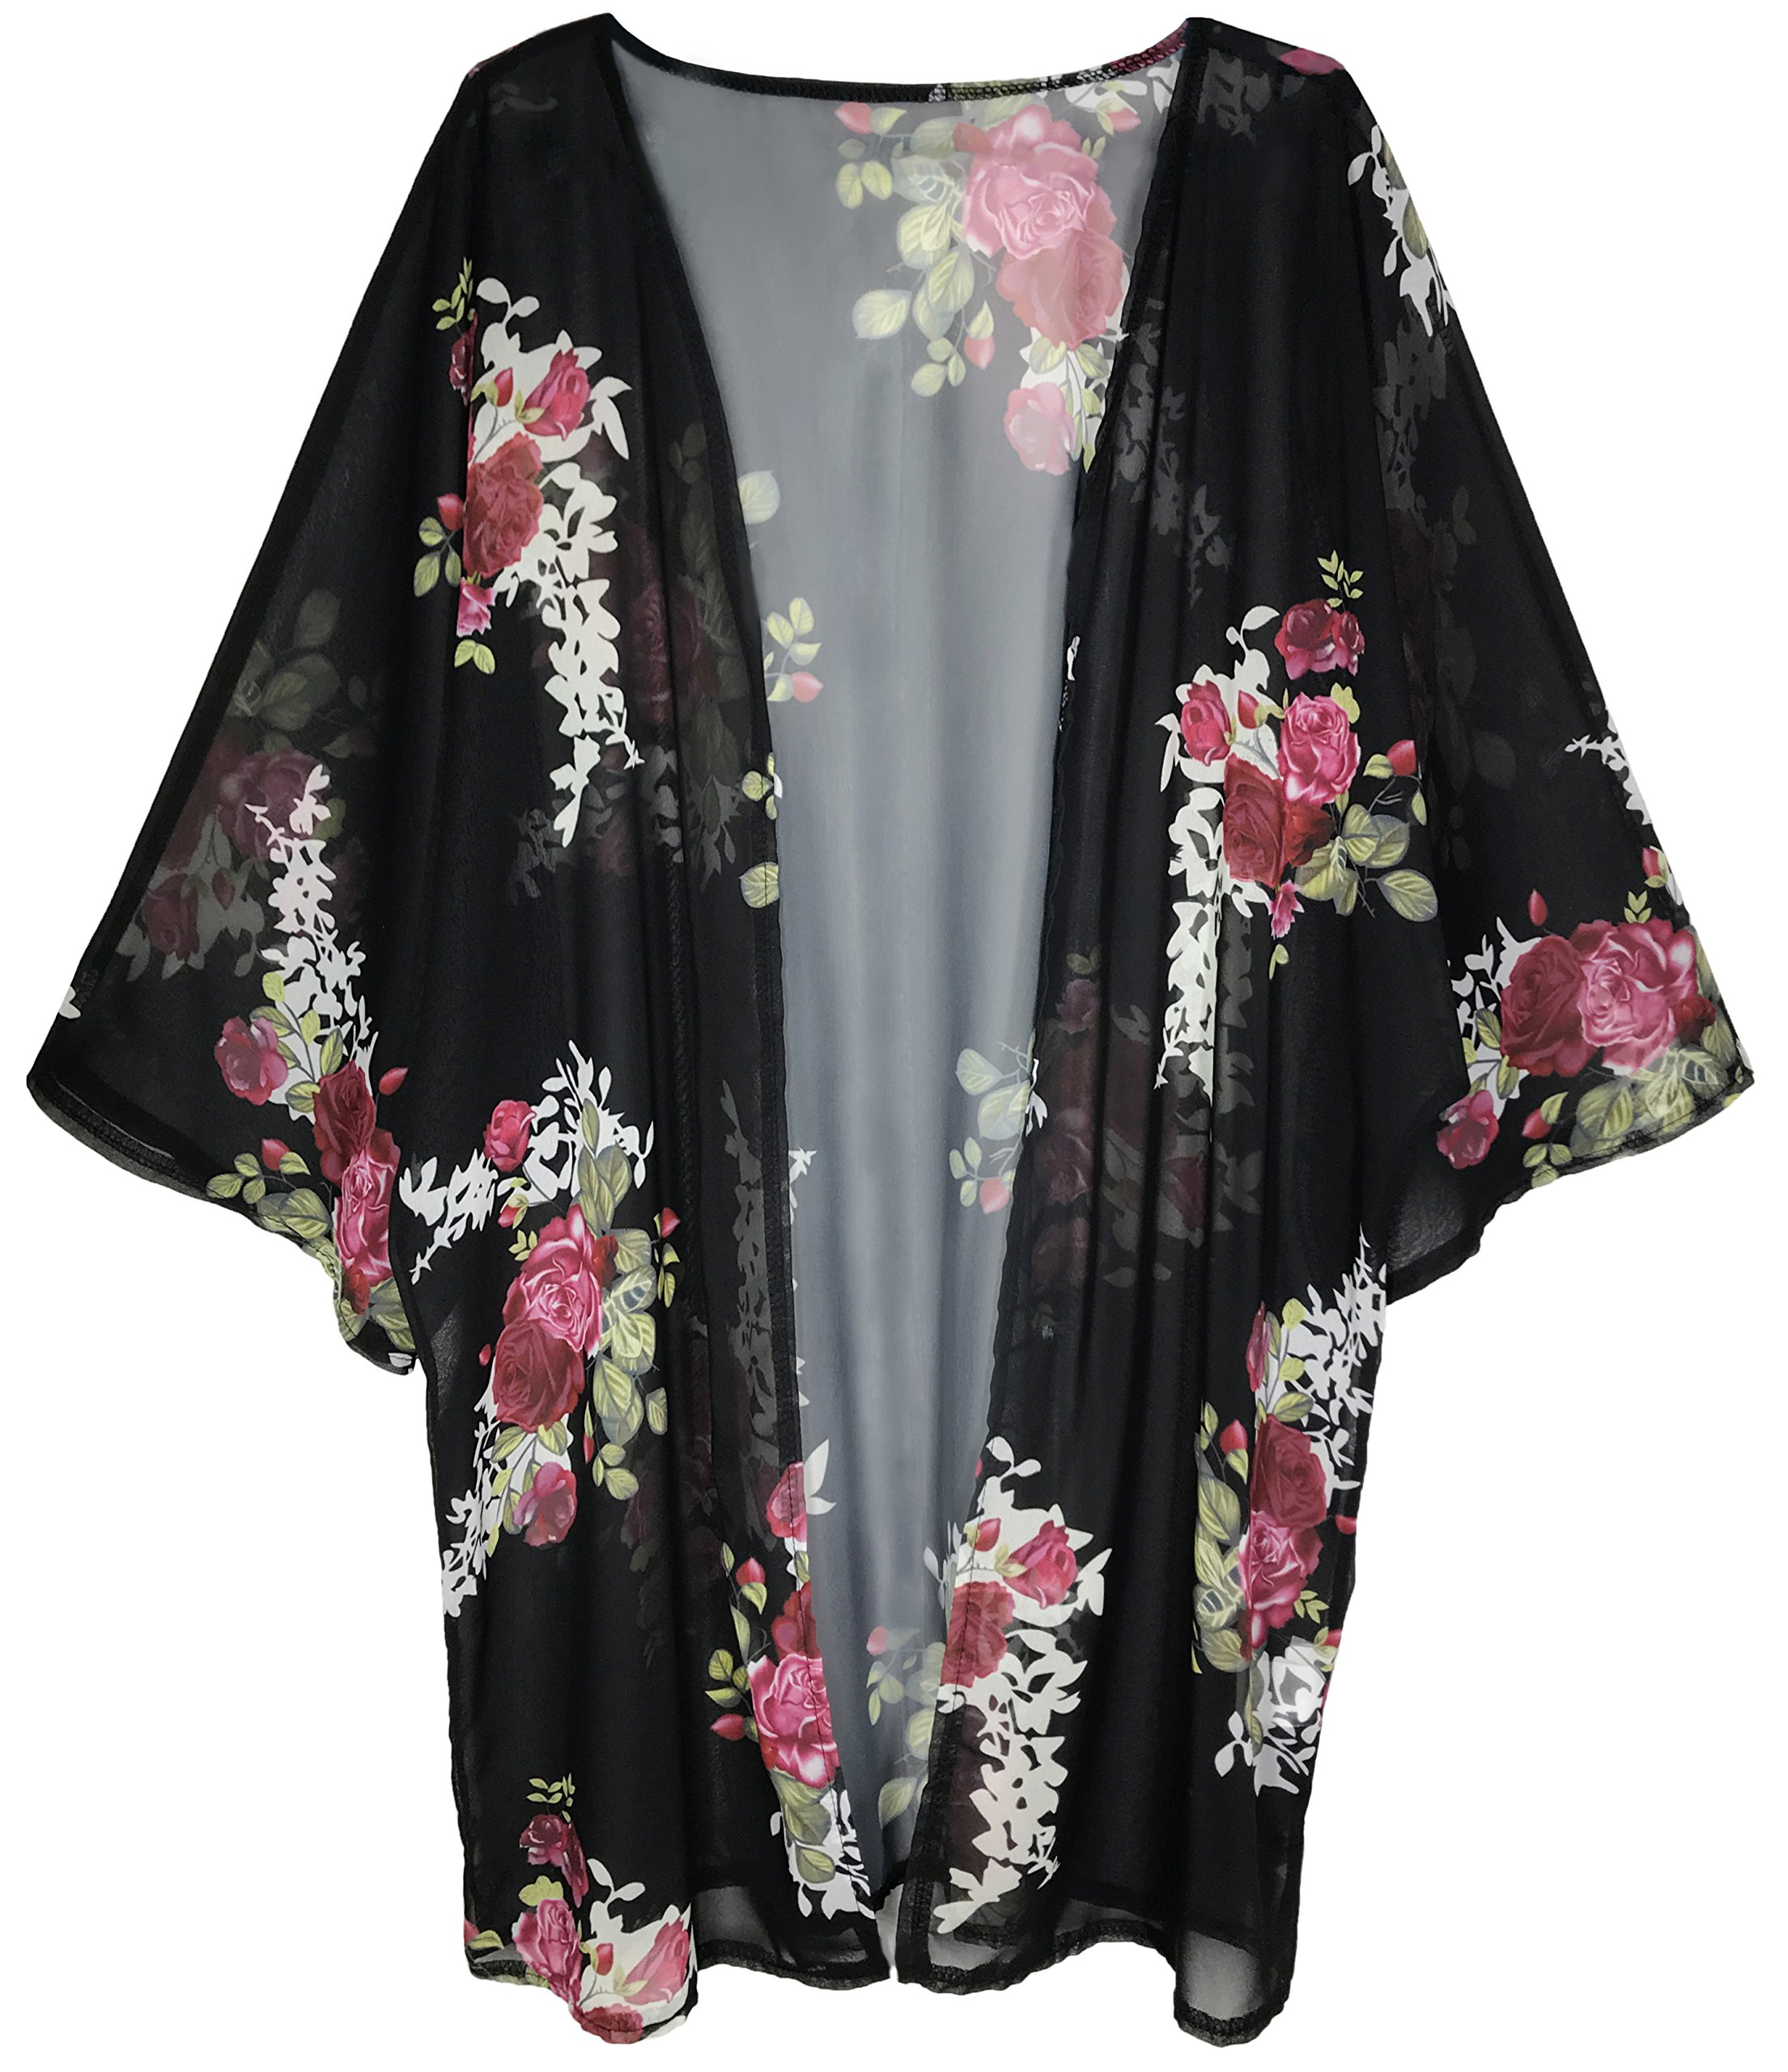 Finoceans Womens Floral Print Kimono Cardigans Loose Beach Cover up Black XL